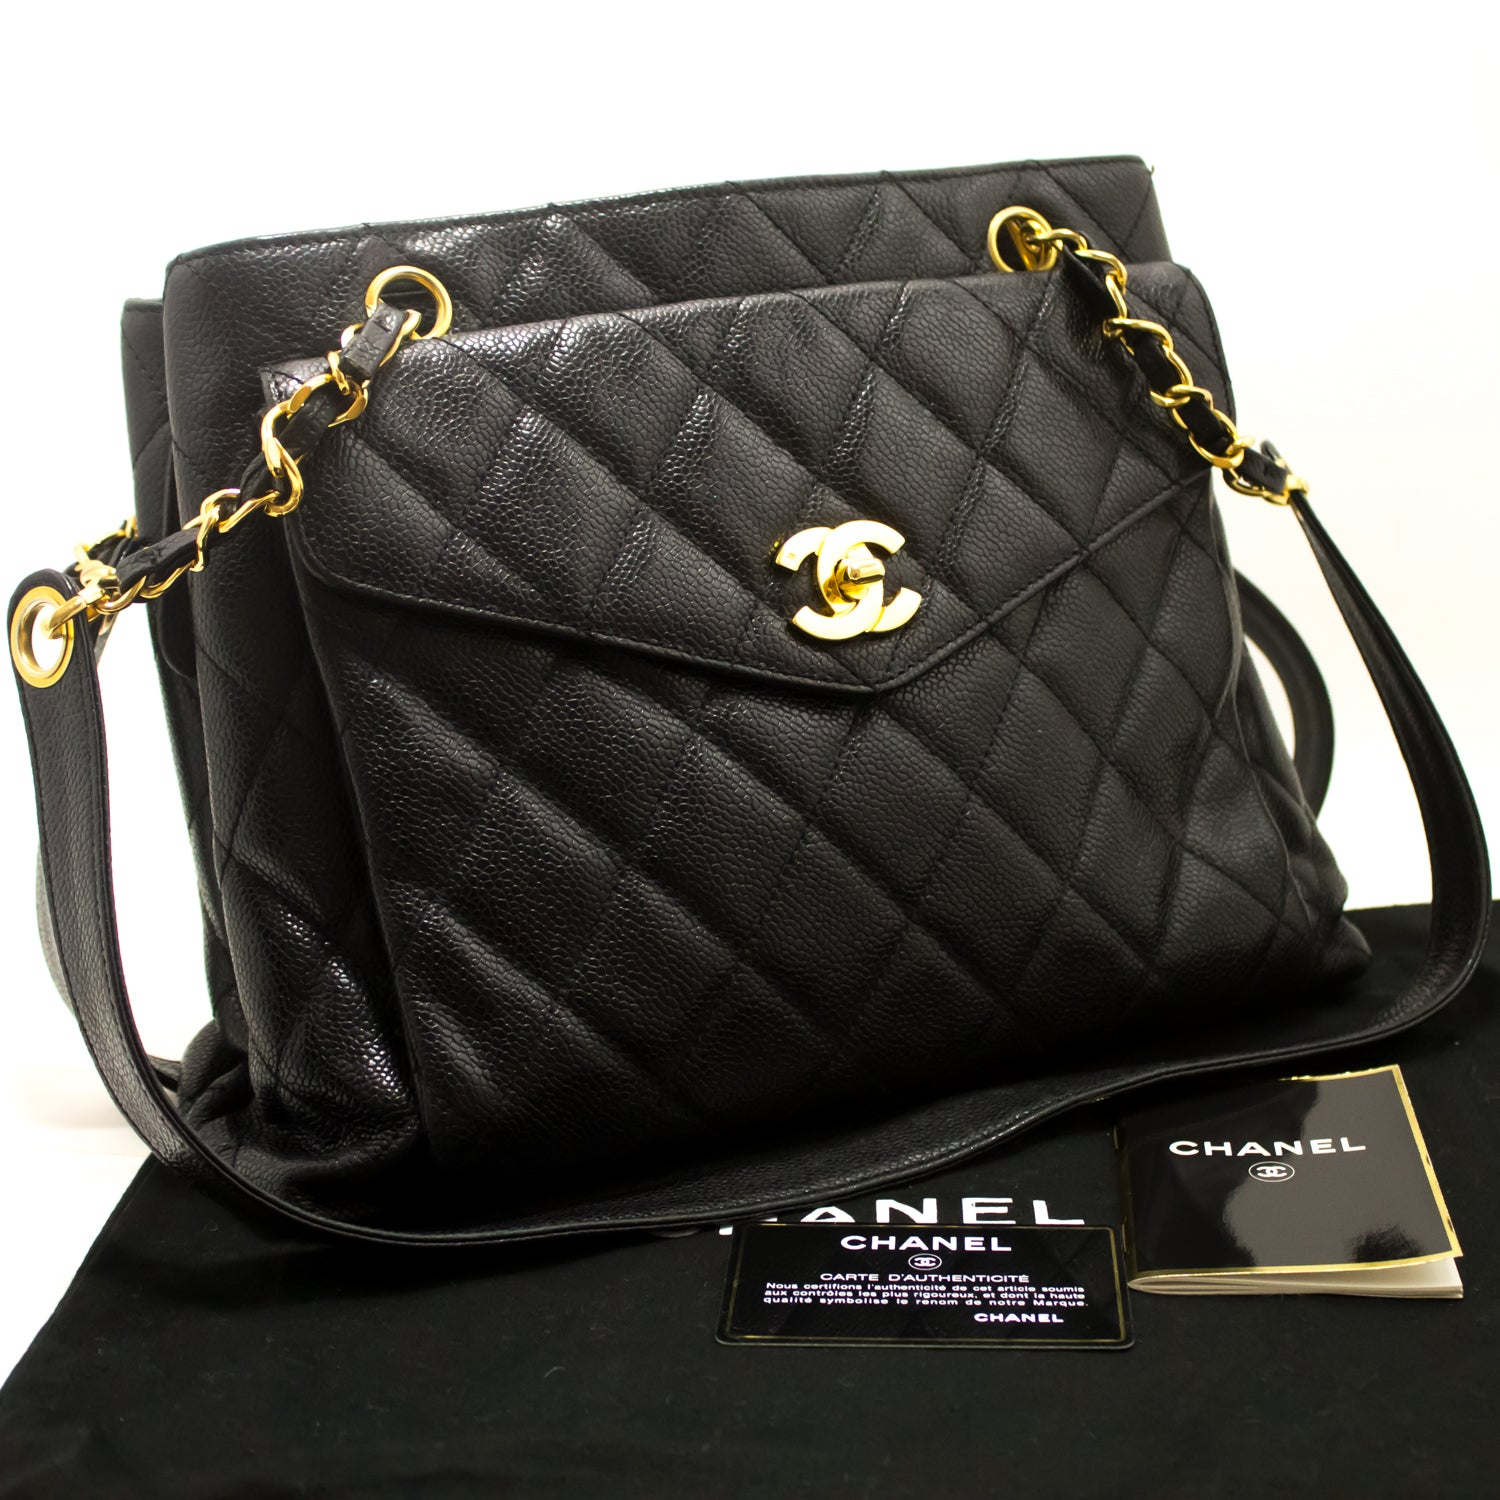 9aec5799425e CHANEL Caviar Large Chain Shoulder Bag Black Quilted Leather Gold i27 ...